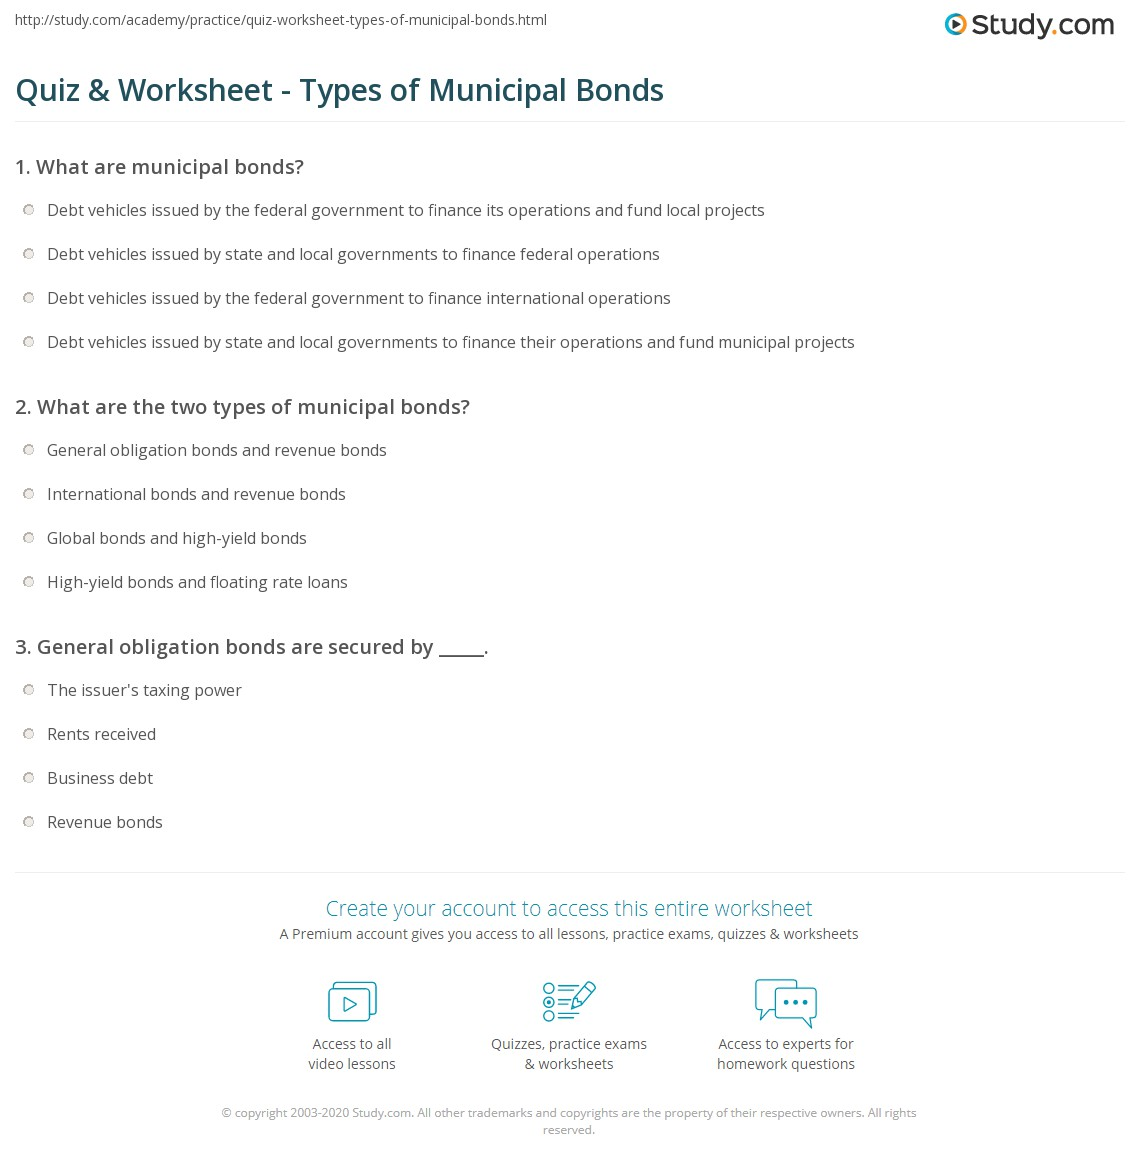 quiz & worksheet - types of municipal bonds | study